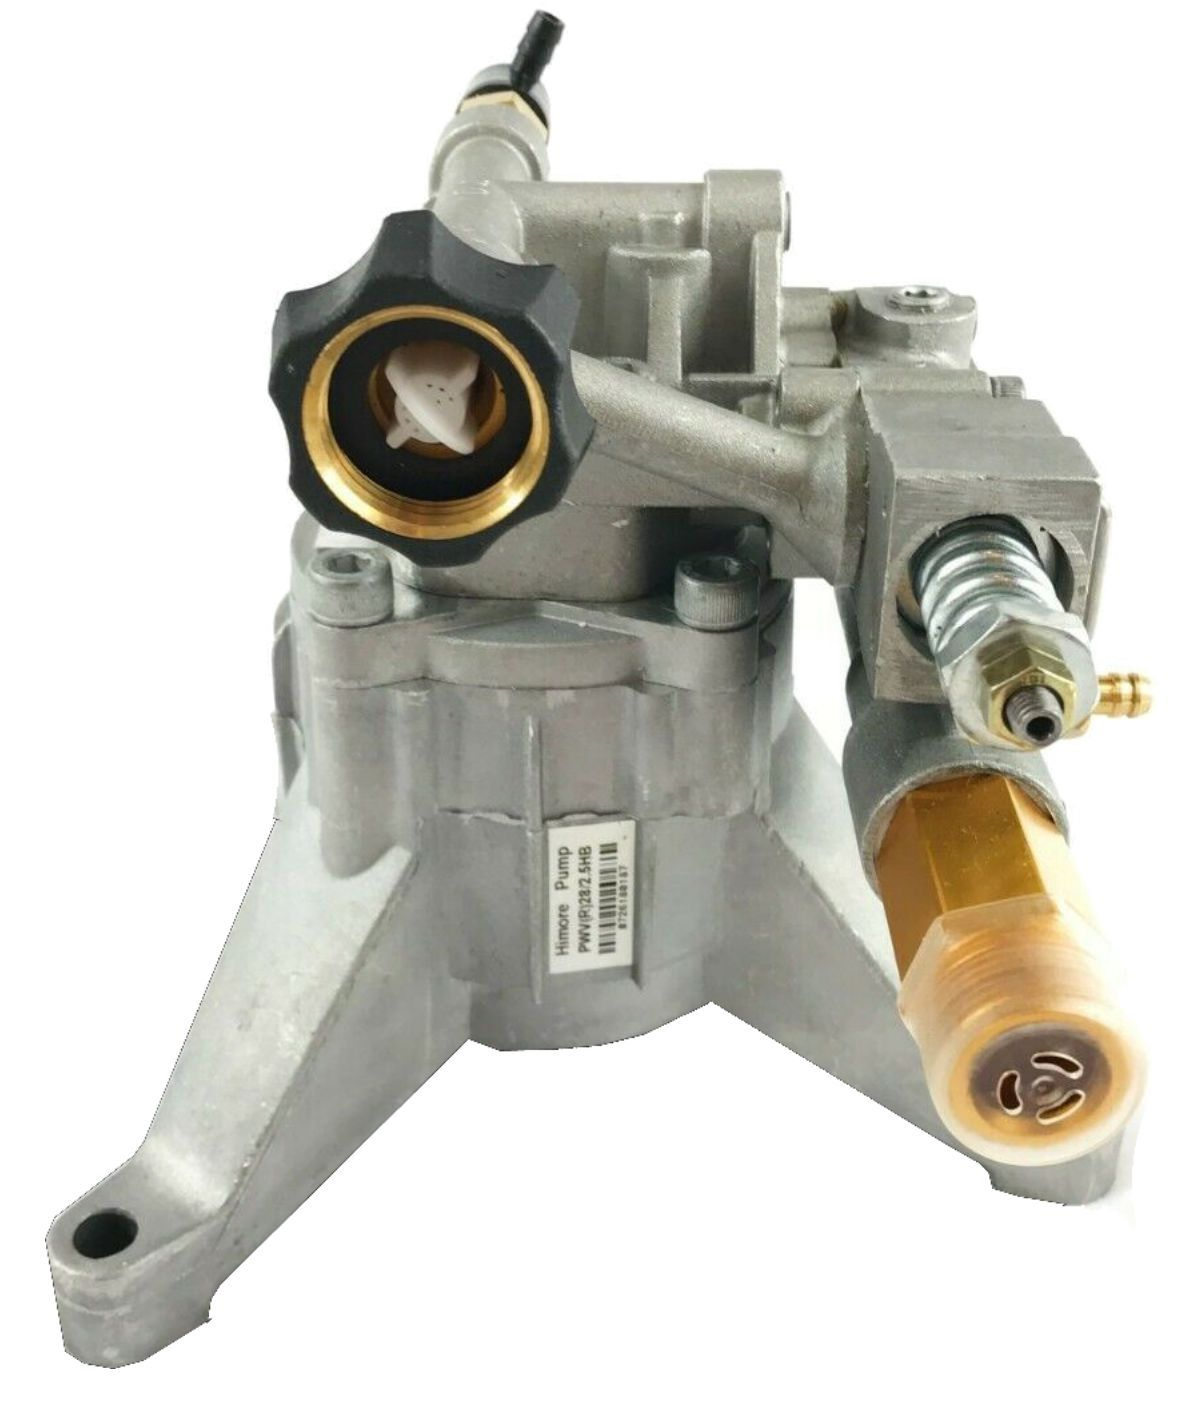 2700 PSI PRESSURE WASHER WATER PUMP Briggs & Stratton Snapper 1807 01807 - AE-Power